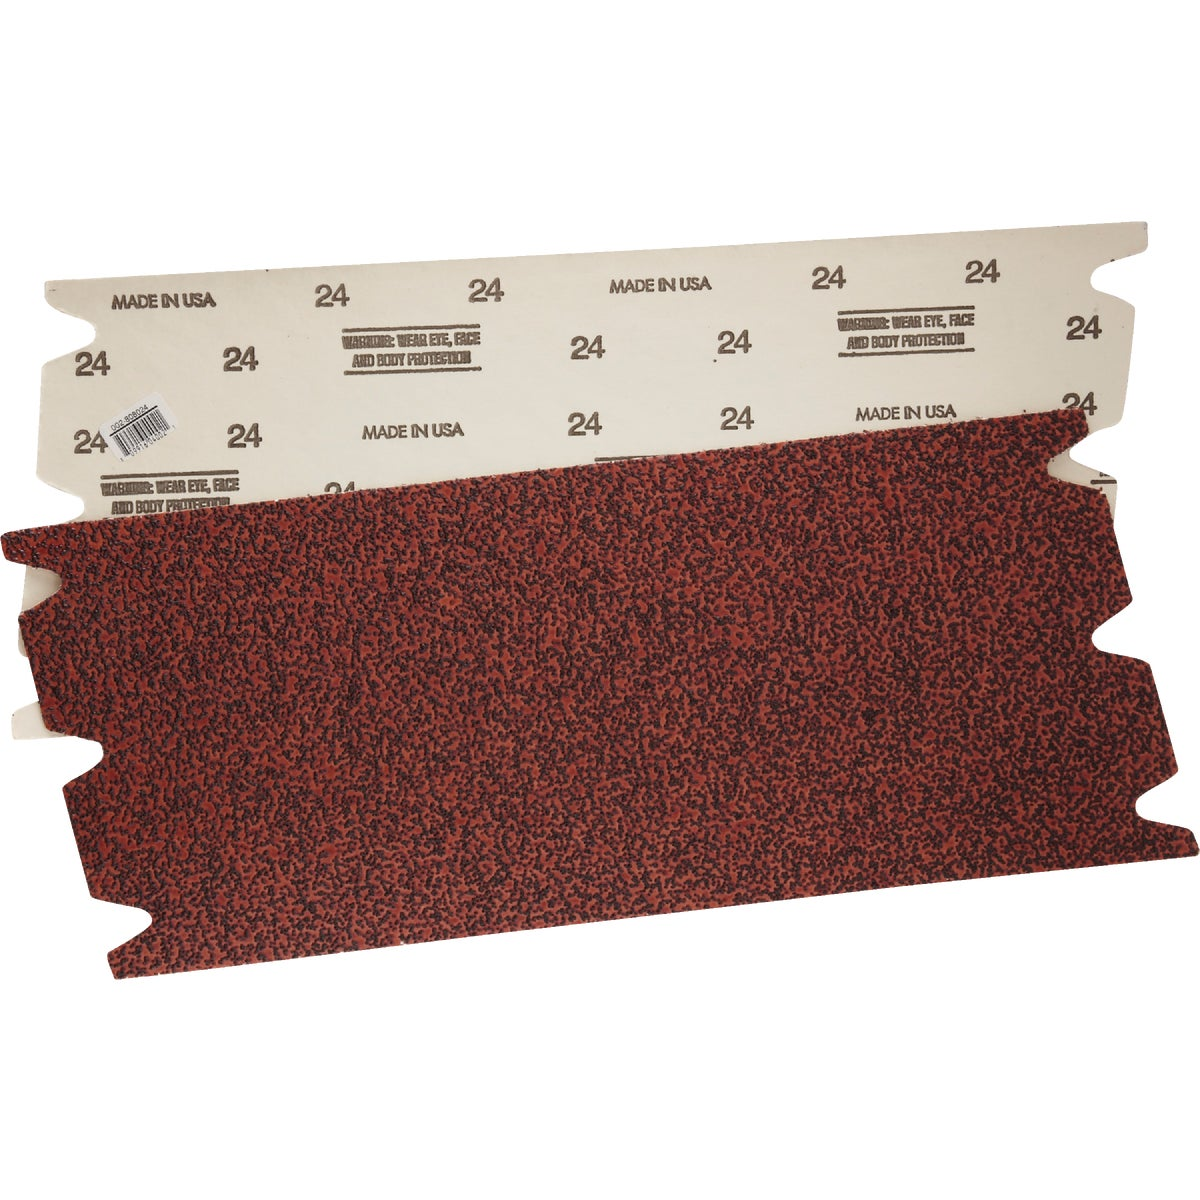 24G FLOOR SANDING SHEET - 002-808024 by Virginia Abrasives